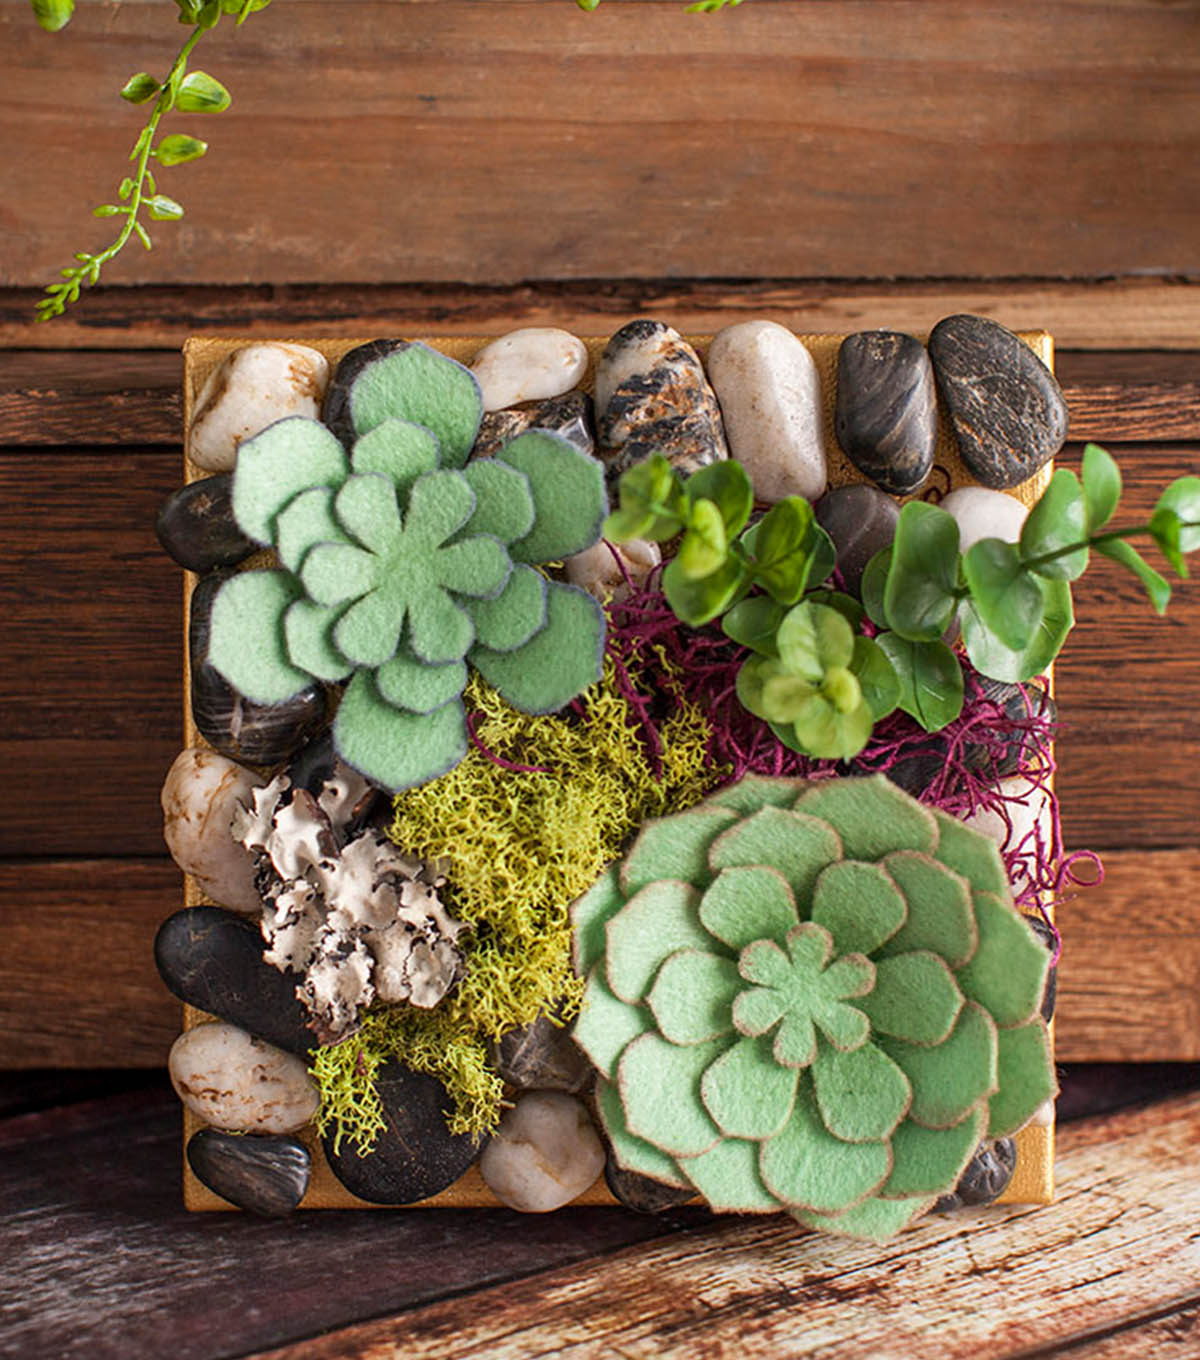 How To Make A Hanging Felt Succulent Garden